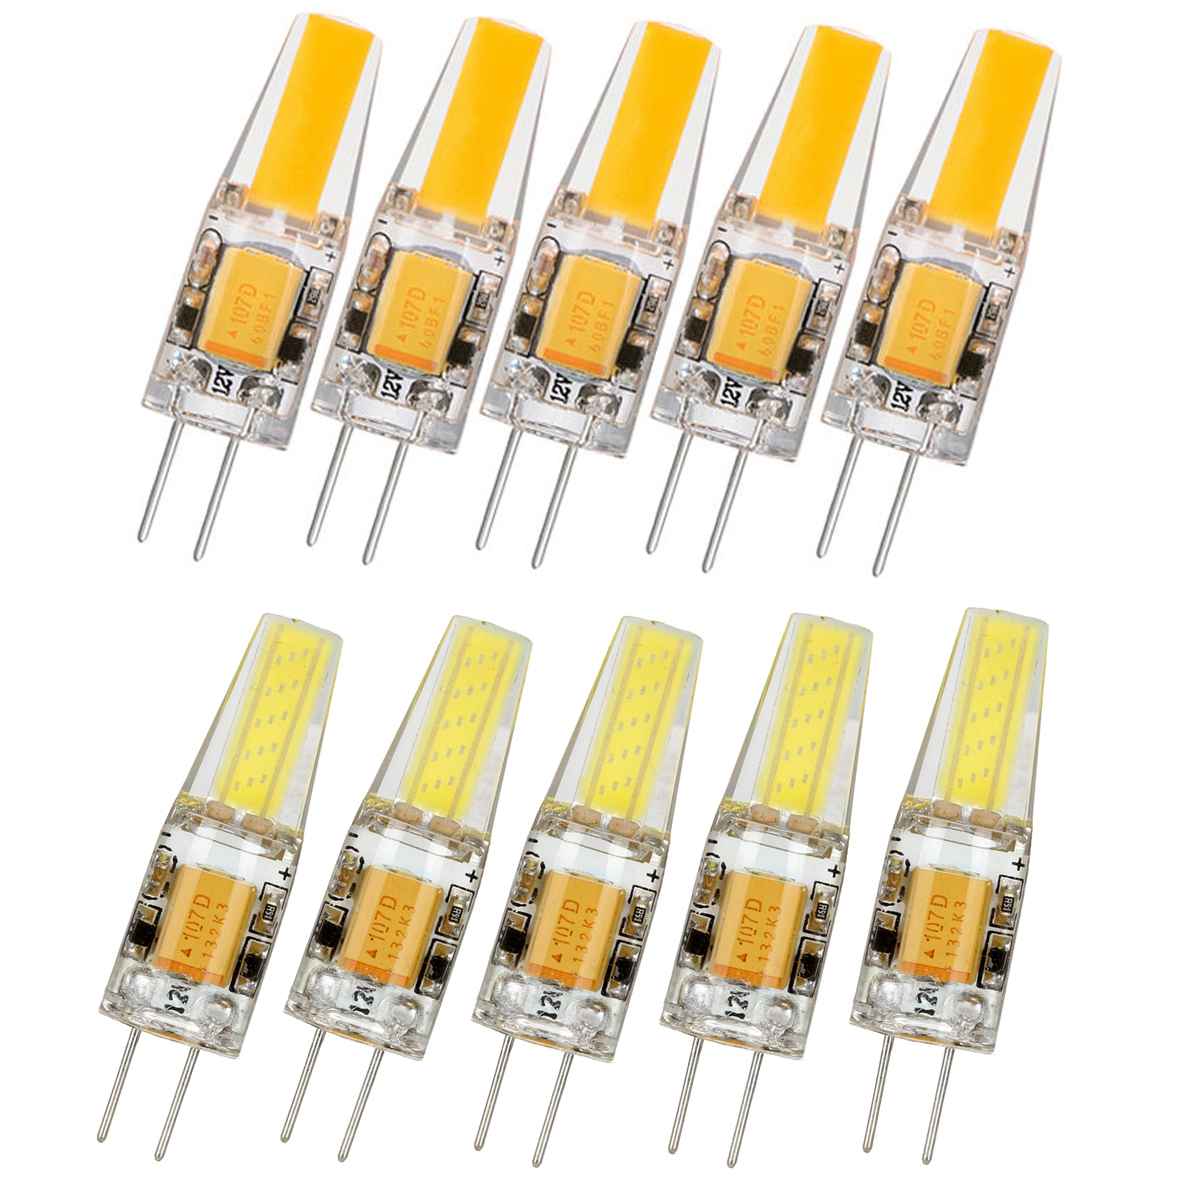 G4 LED Bulb SMD Capsule Light Replace Halogen Lamp Cool//Warm Replacement Bulbs